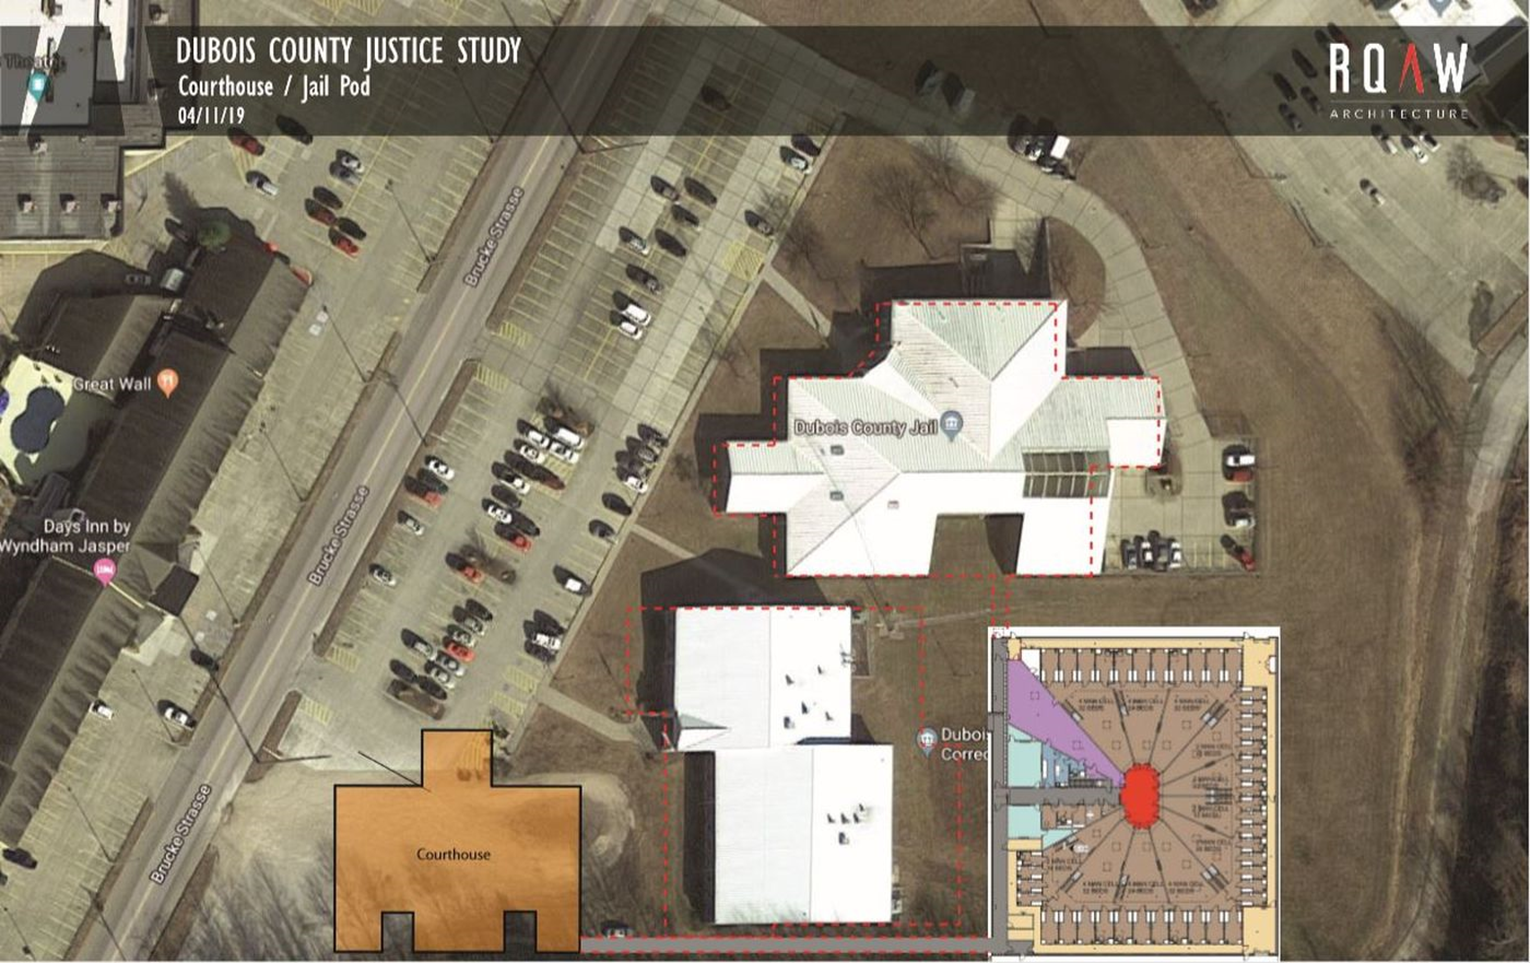 FIRST LOOK:  A Potential Design For a New Dubois County Jail Unveiled This Week